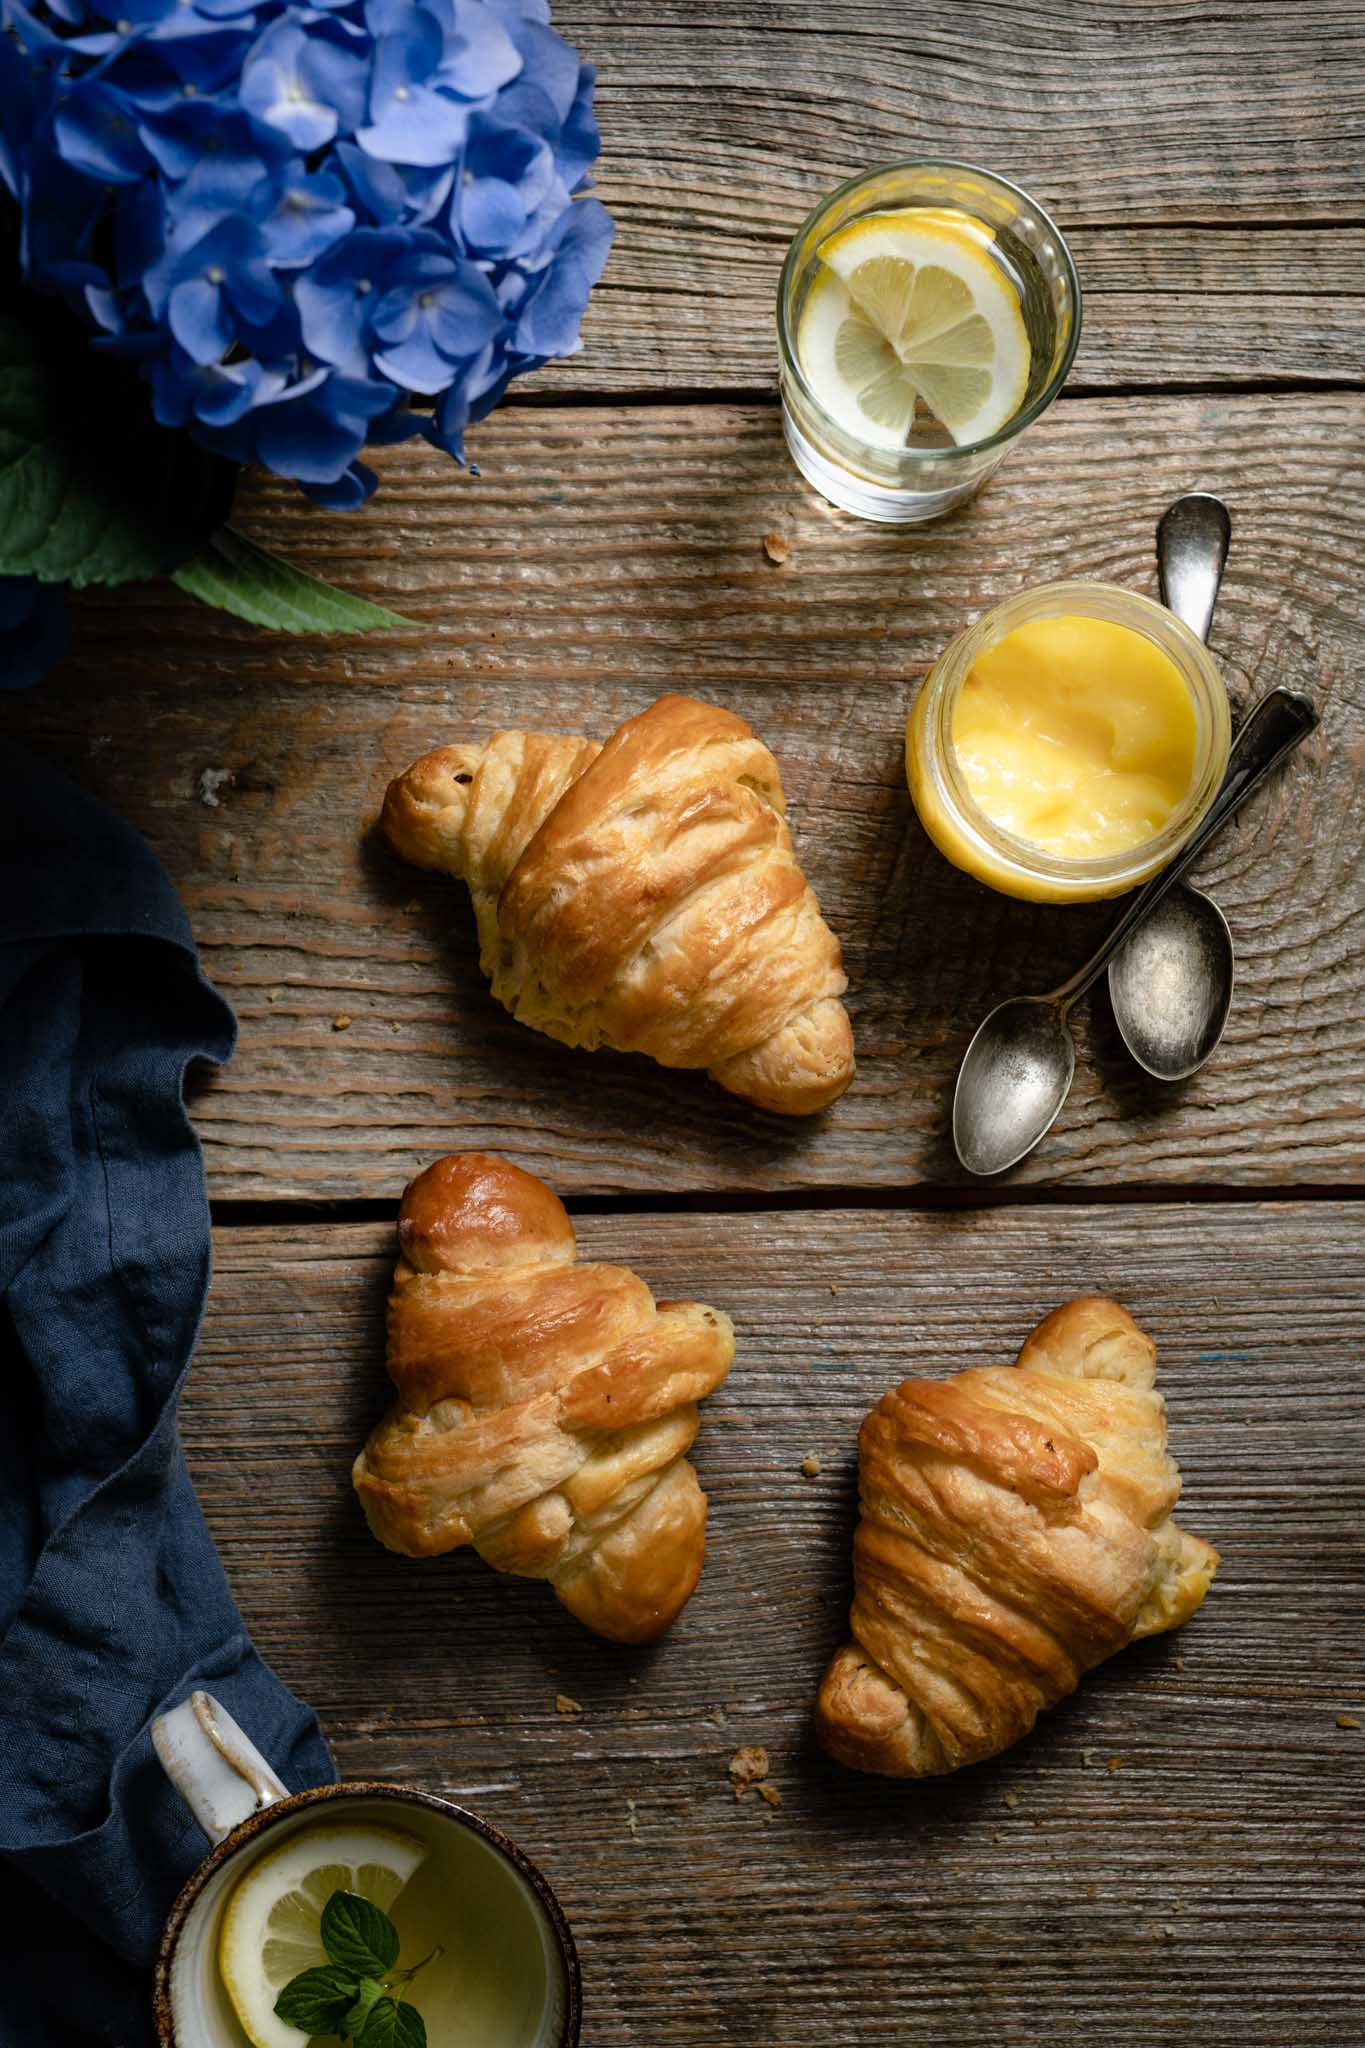 How to make croissants from scratch.